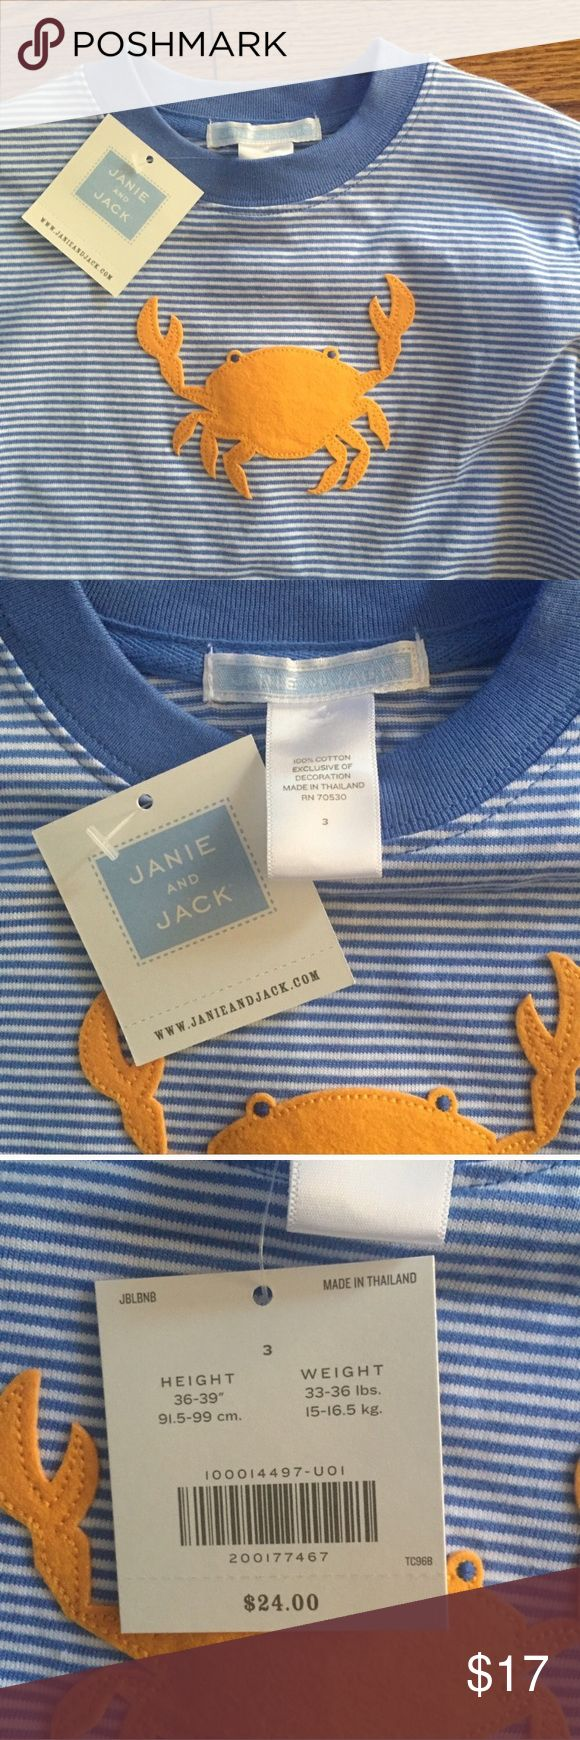 NWT Janie and Jack top...Size 3 NWT...adorable Janie and Jack long sleeve top...blue and white stripes with orange crab...Size 3...no rips, stains or snags...from a smoke free home! Janie and Jack Shirts & Tops Tees - Long Sleeve